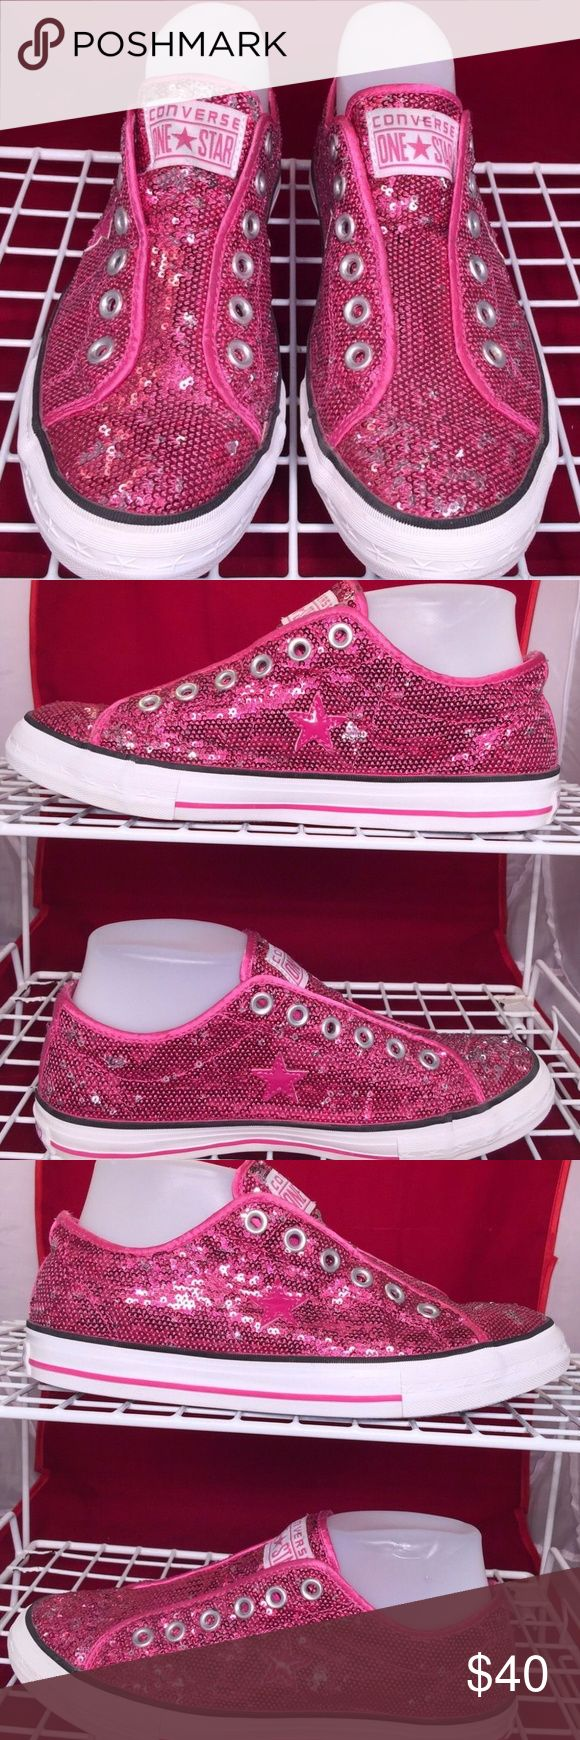 Pink Sequin Glitter All Star Converse!!! Beautiful pink sequin glitter All Star Converse.  I have only wore them one time to my in-laws house for about 2 hours.  They are in absolute perfect condition.  There were a limited addition release shoe.  I paid $139.99 when I bought them at the mall. I didn't try them on thinking that they would fit like all other converse but they run true to size and I am a size 9 and they are an 8.5.  My loss is your gain!!!  TAKING OFFERS ON EVERYTHING IN MY…